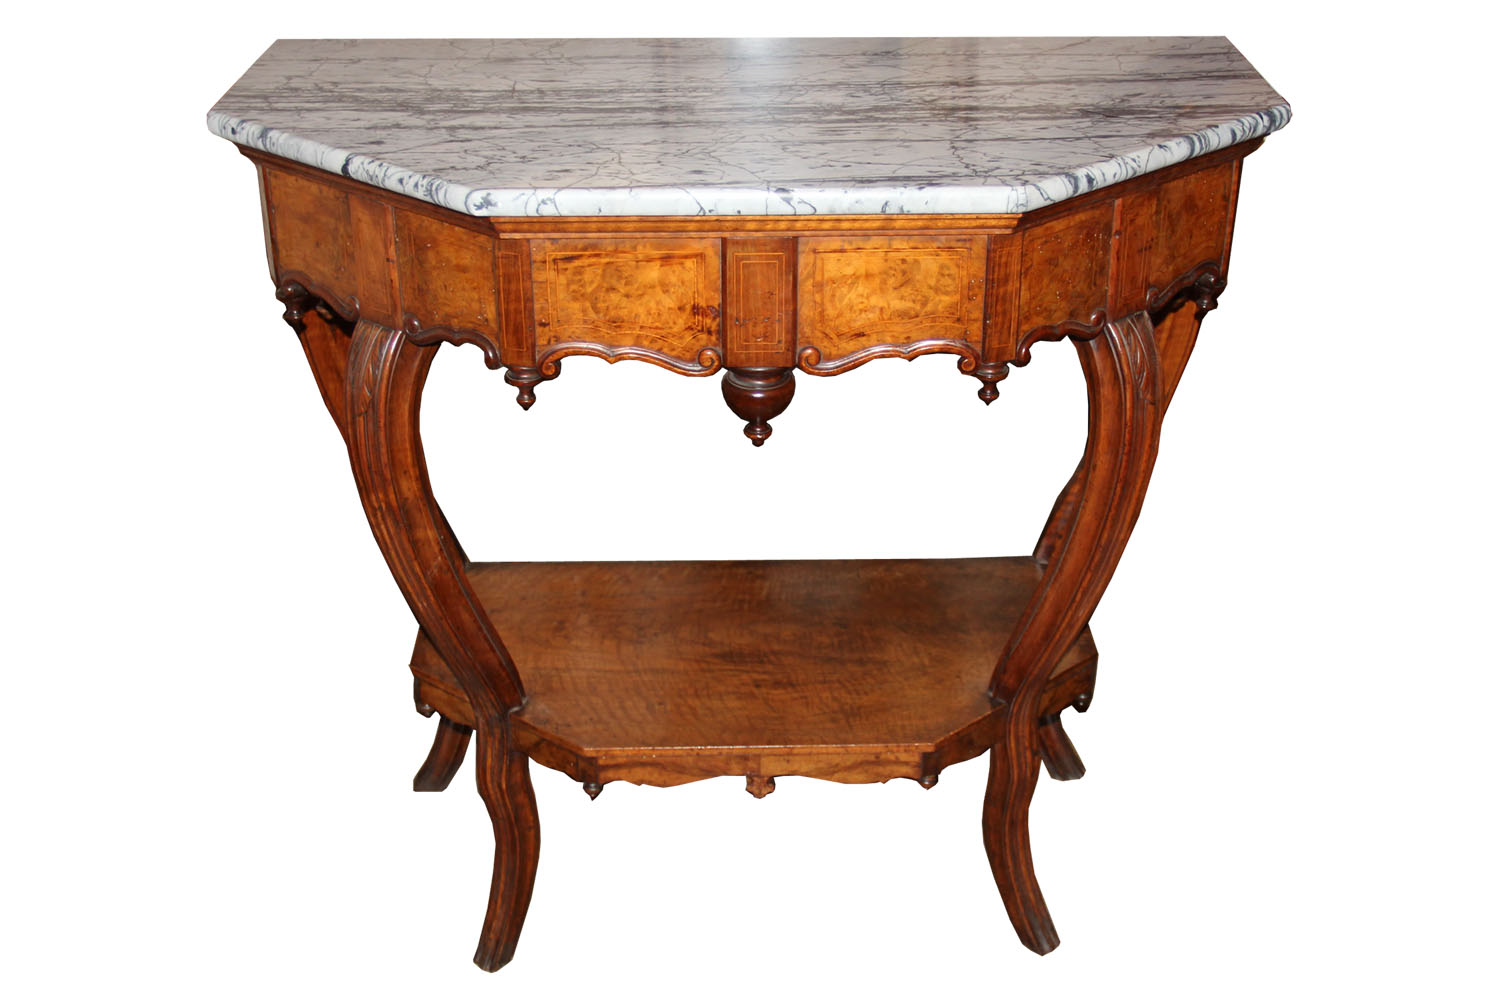 An 18th Century Florentine Walnut Six-Sided Console Table No. 4532